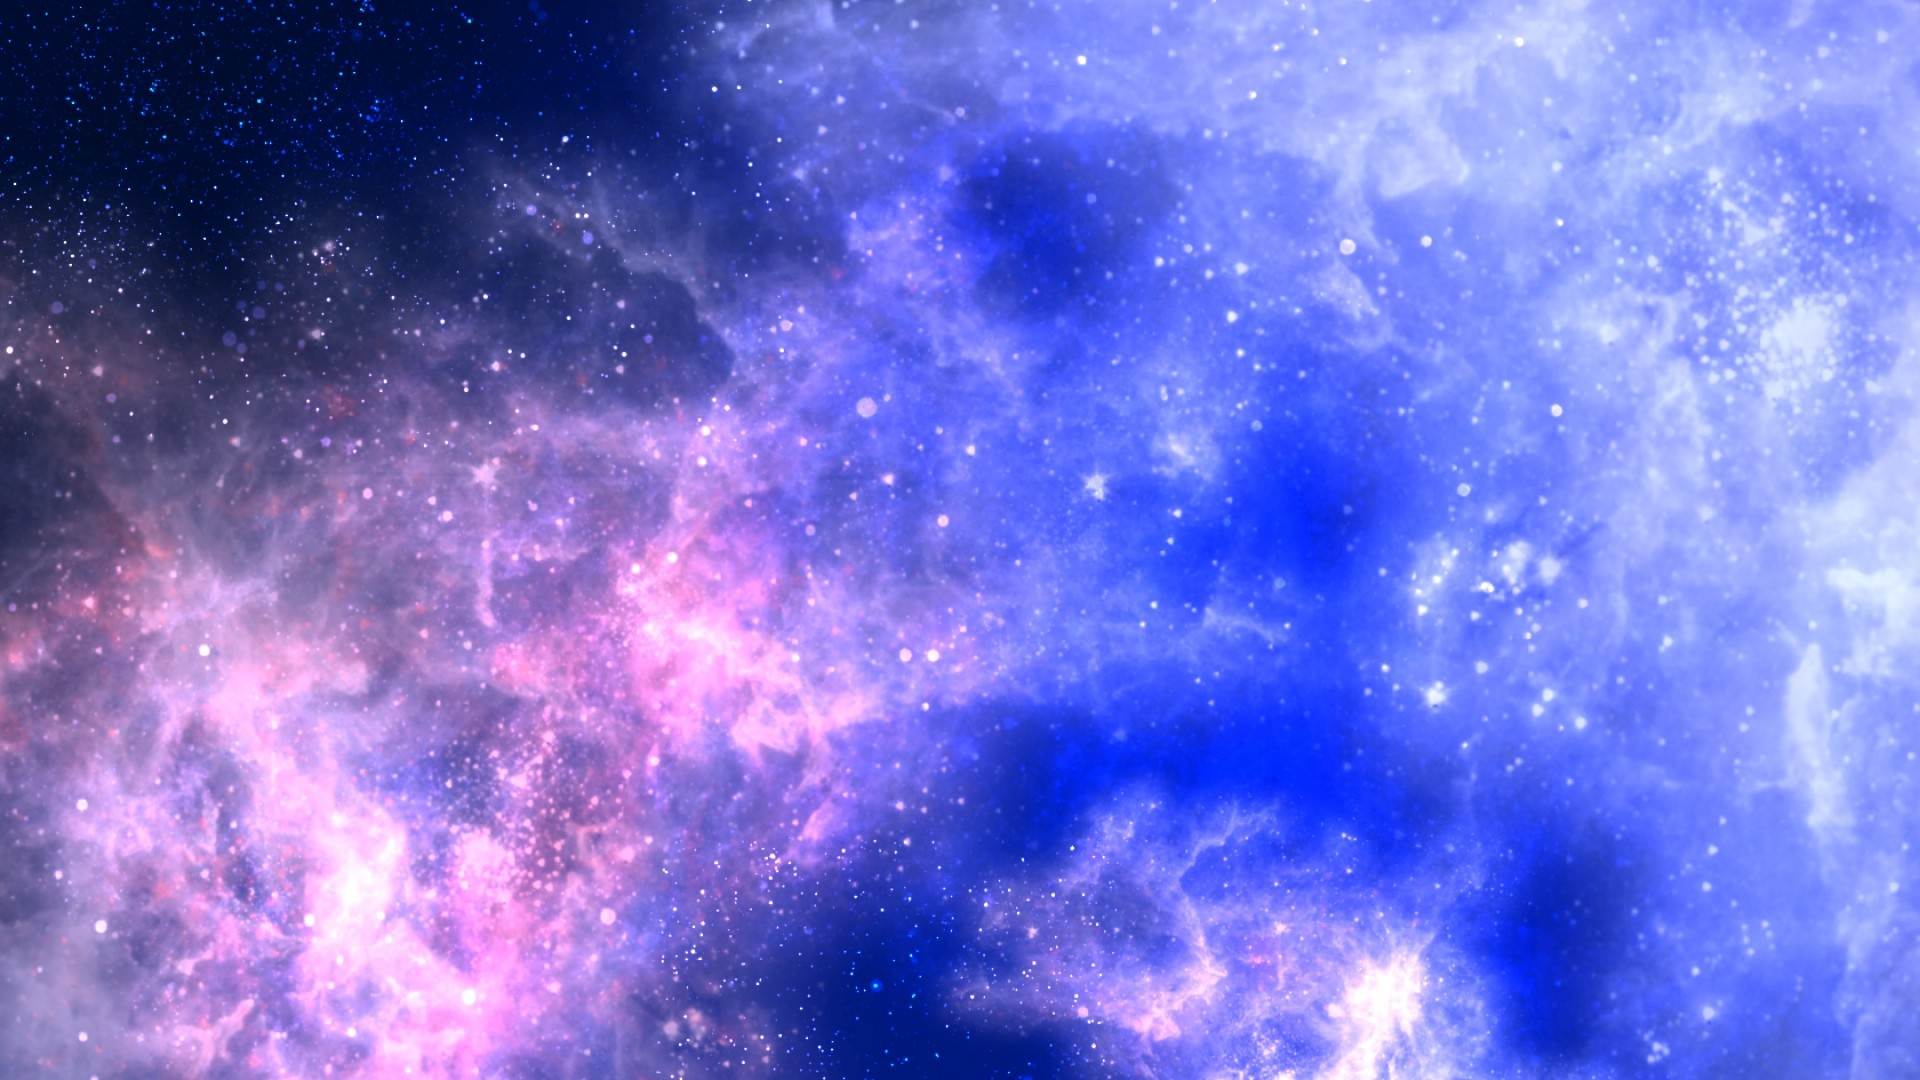 Aesthetic Dark Blue Galaxy Background Roblox How To Get Free